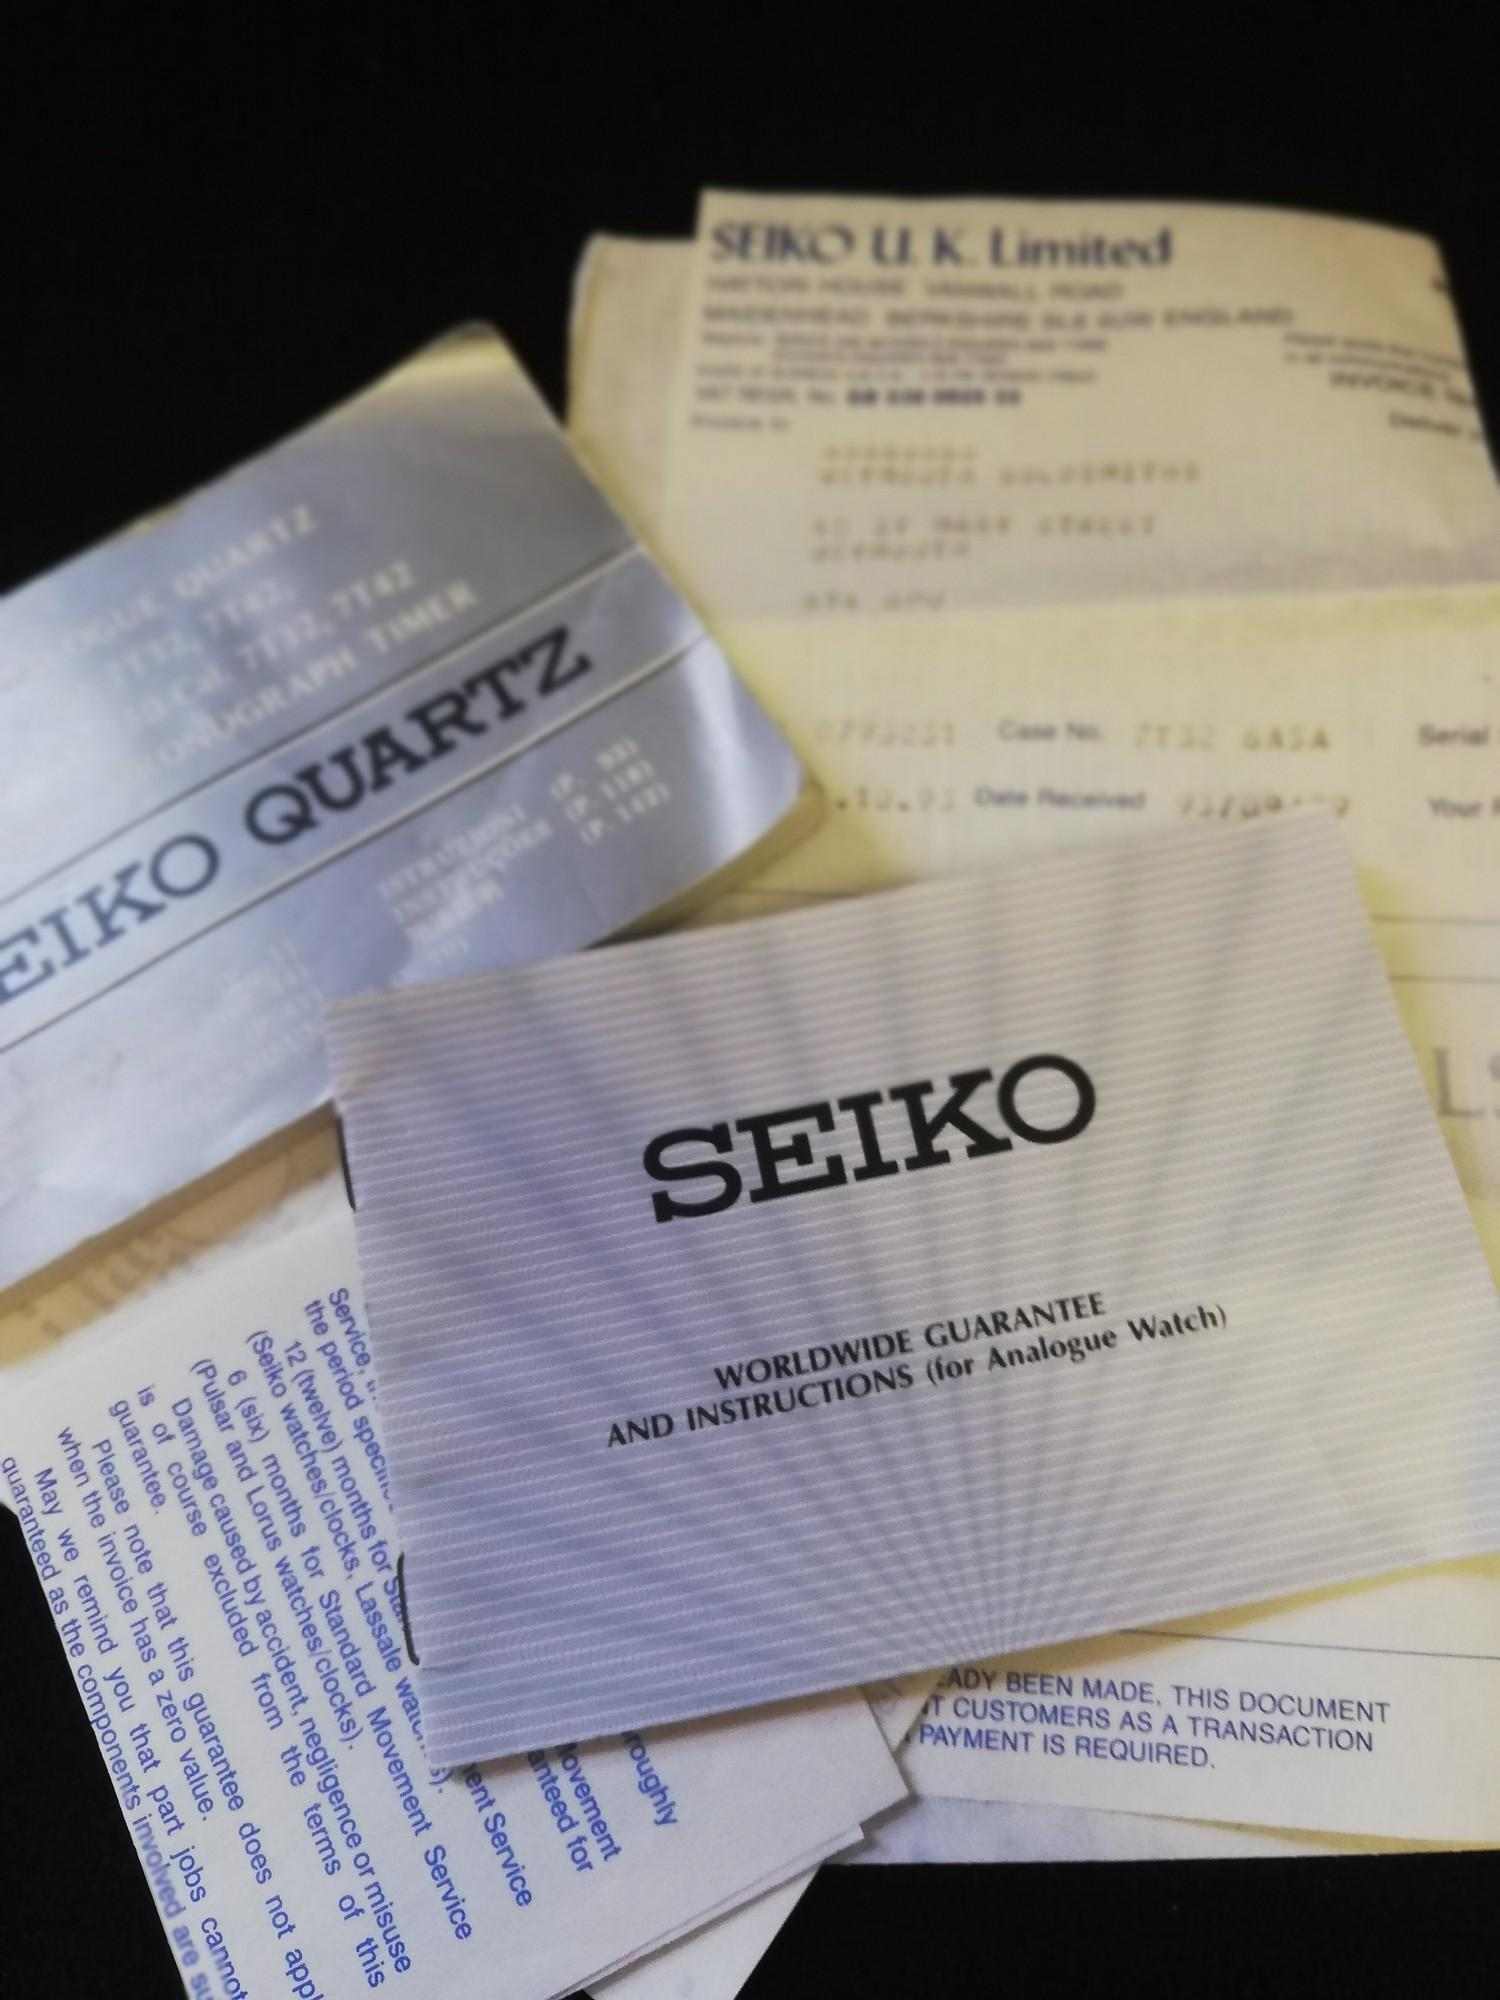 Seiko quatz alarm chronograph watch with papers and booklet 1993